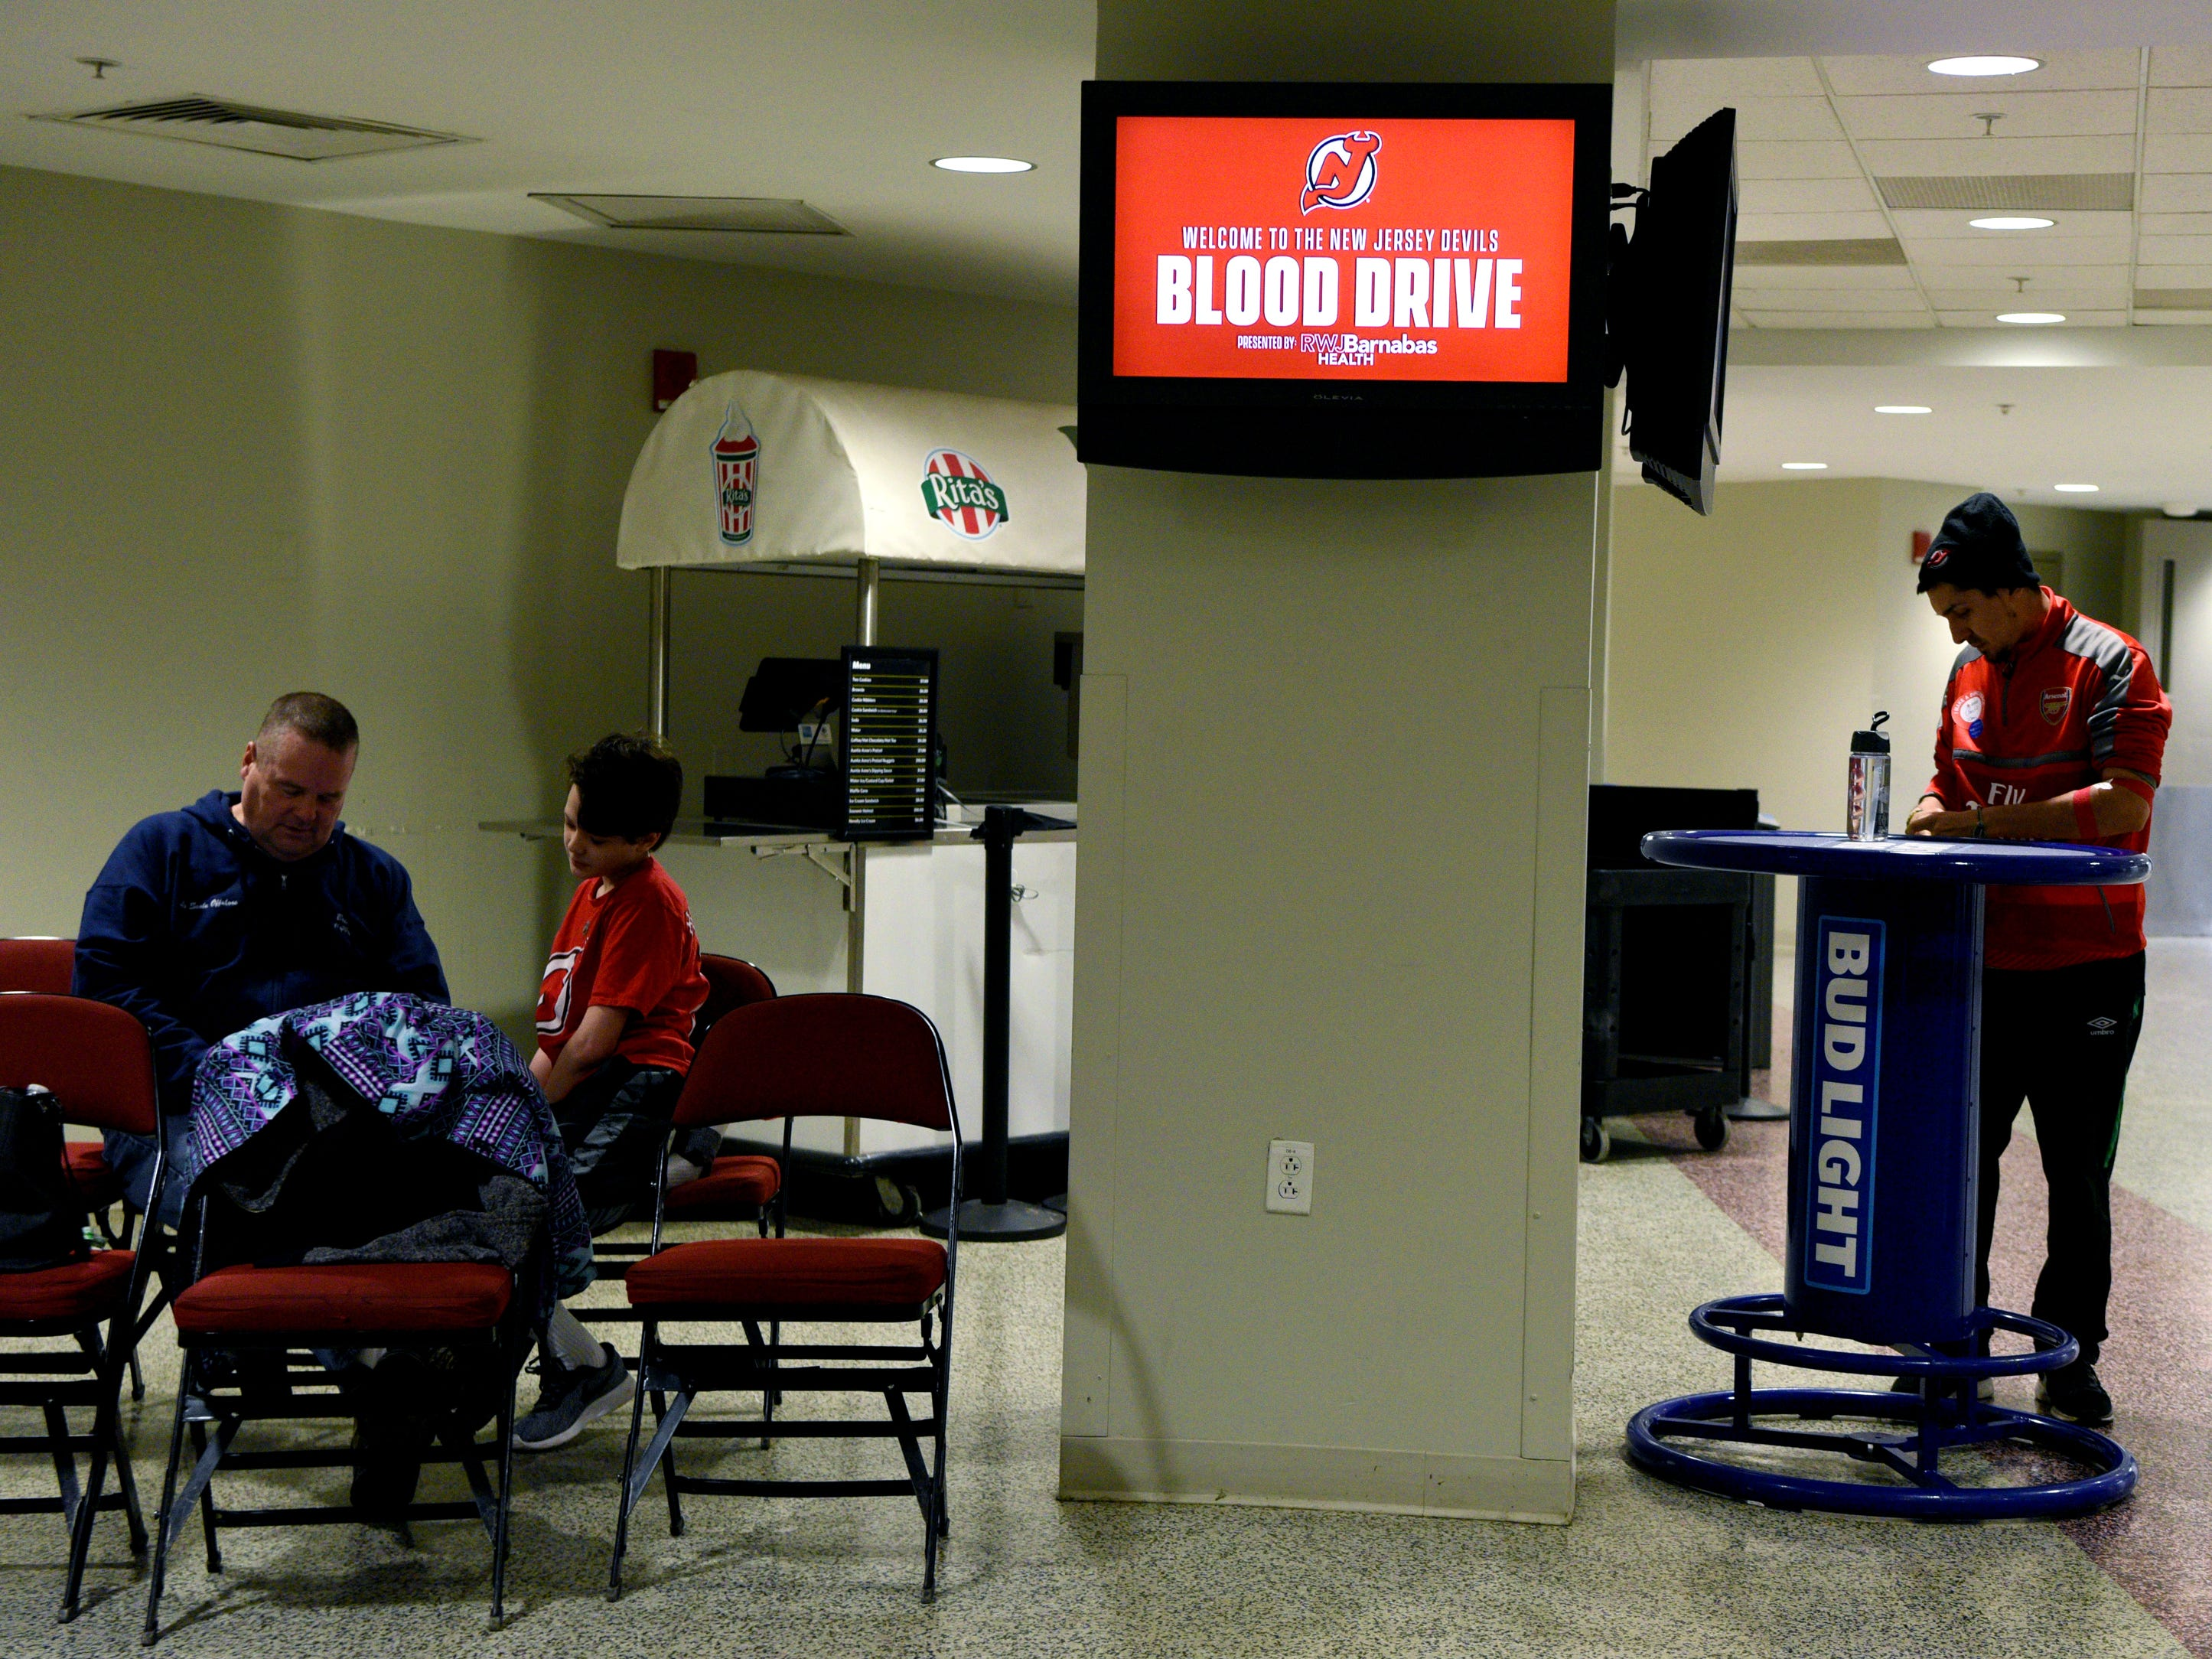 The New Jersey Devils and RWJBarnabas Health hosted their third annual blood drive in coordination with the American Red Cross on Sunday, March 10, 2019 at the Prudential Center in Newark.